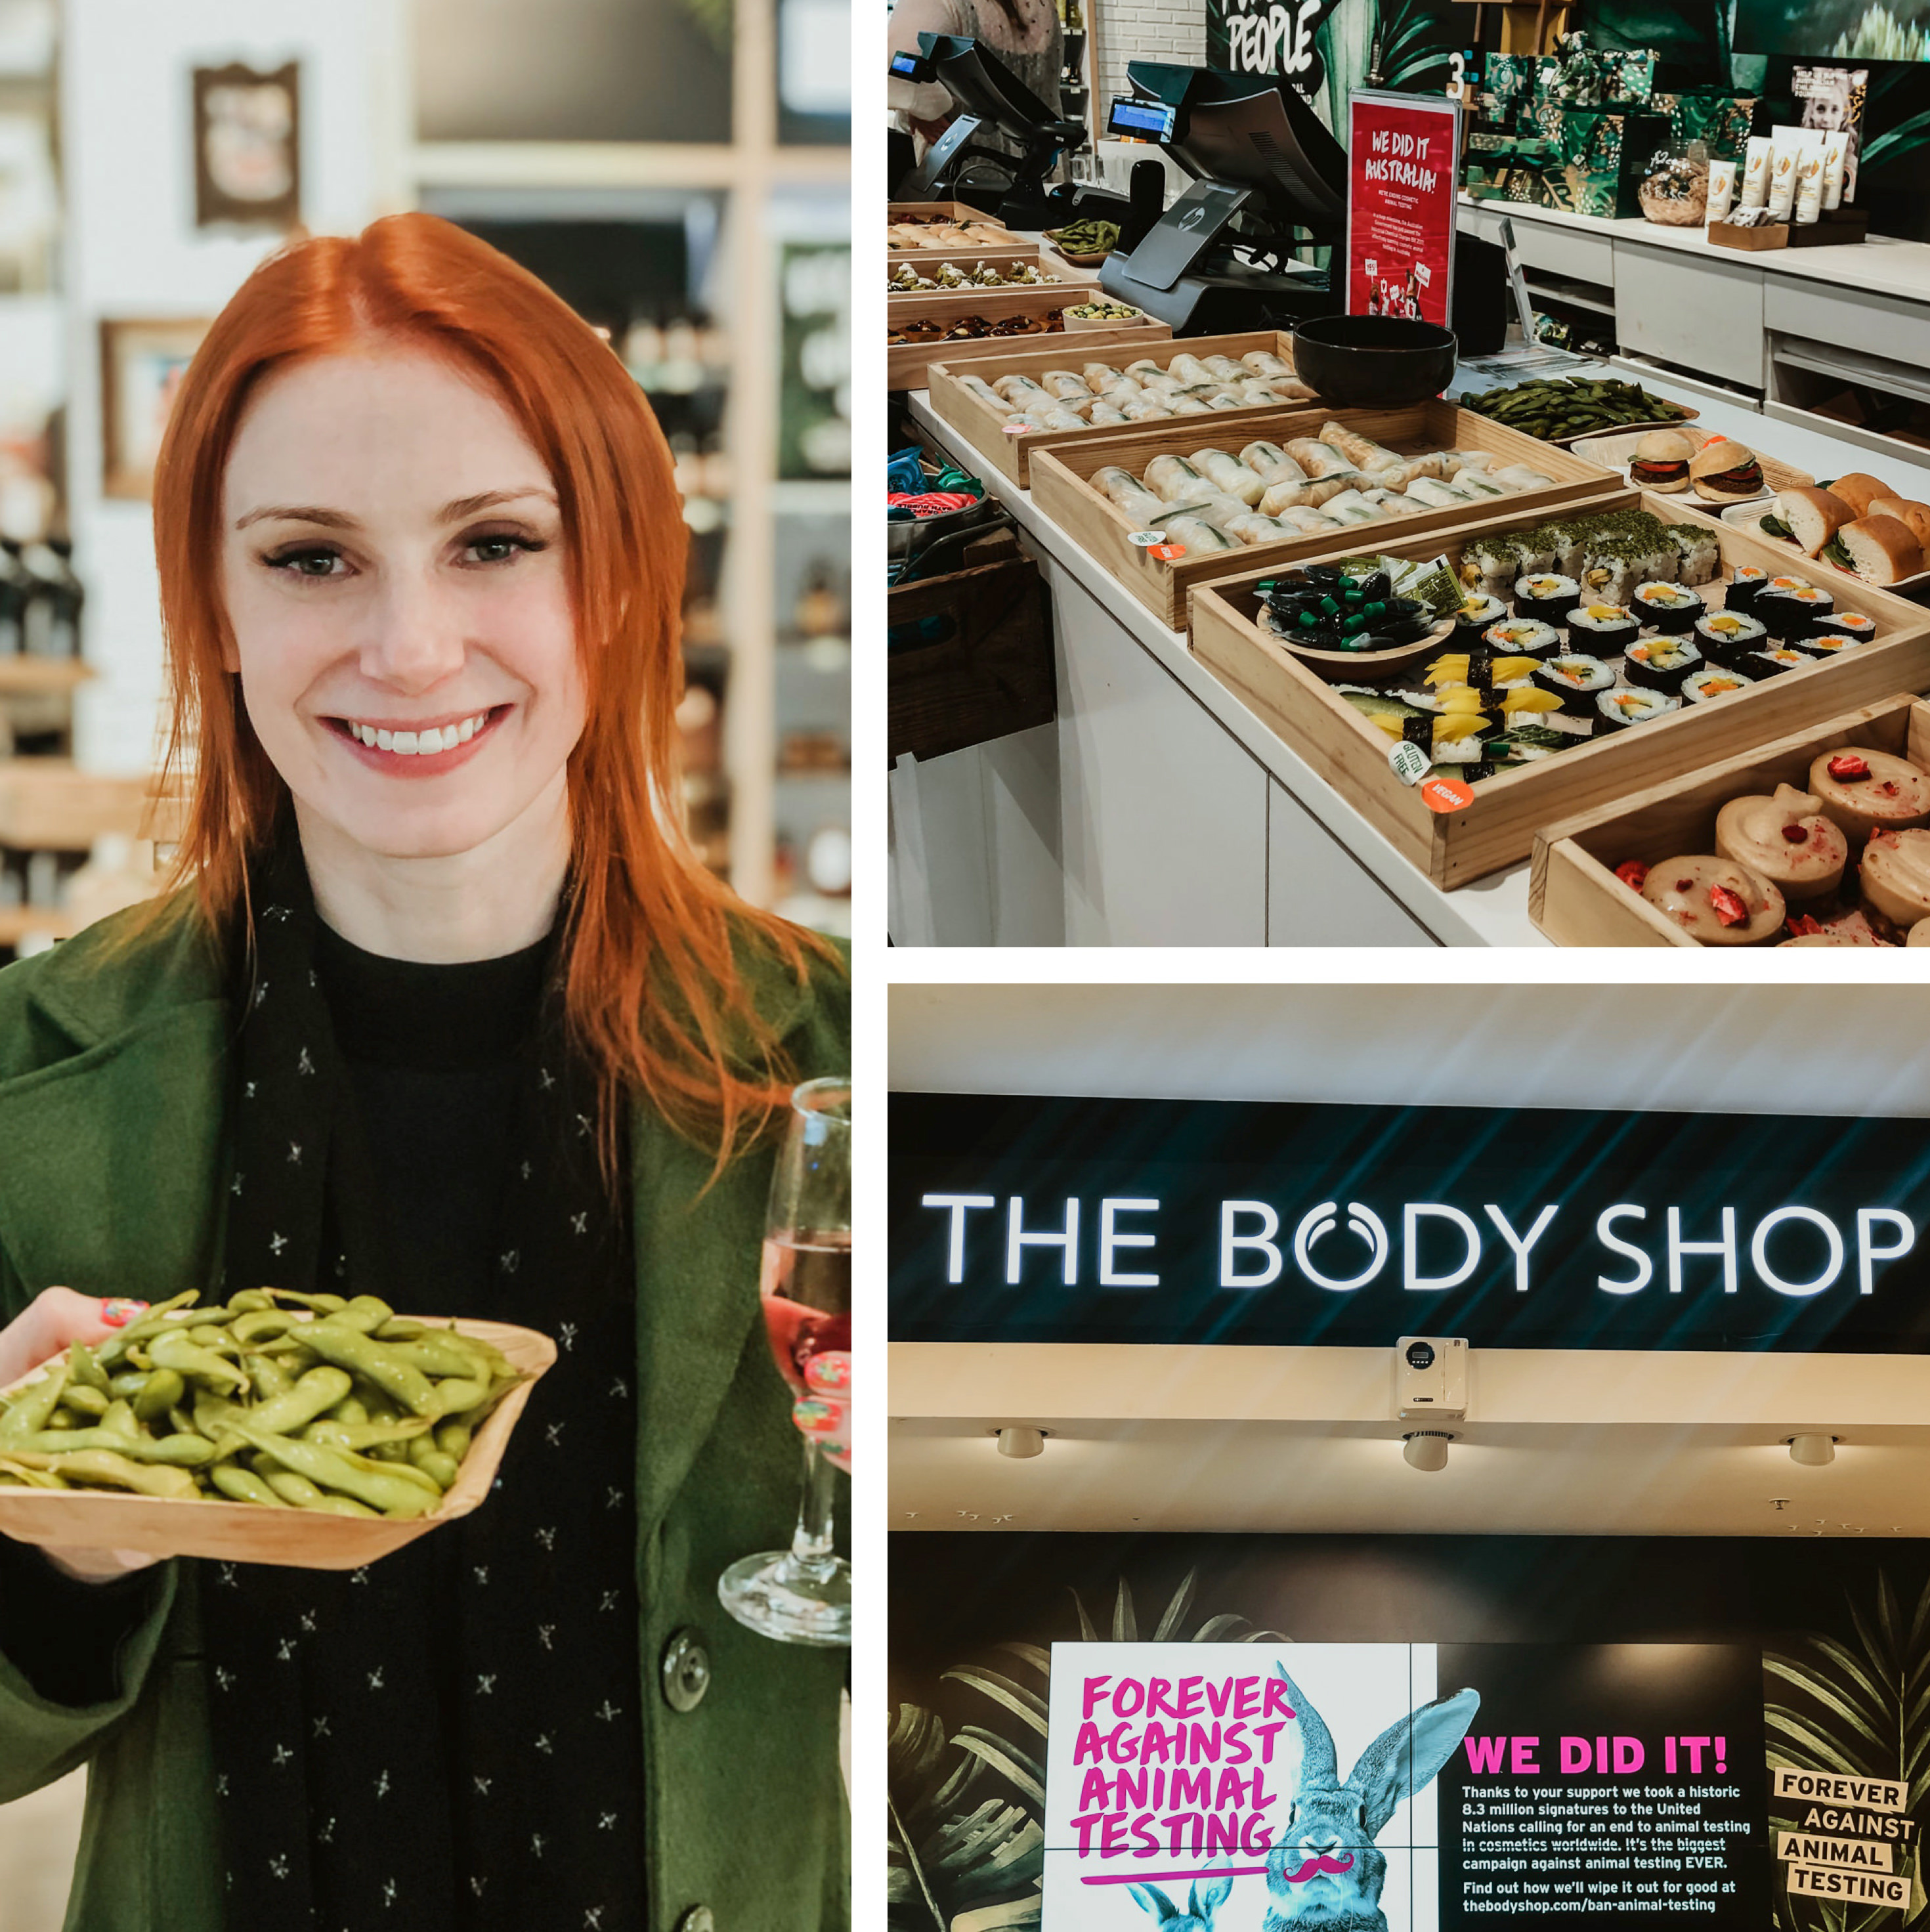 Body shop event